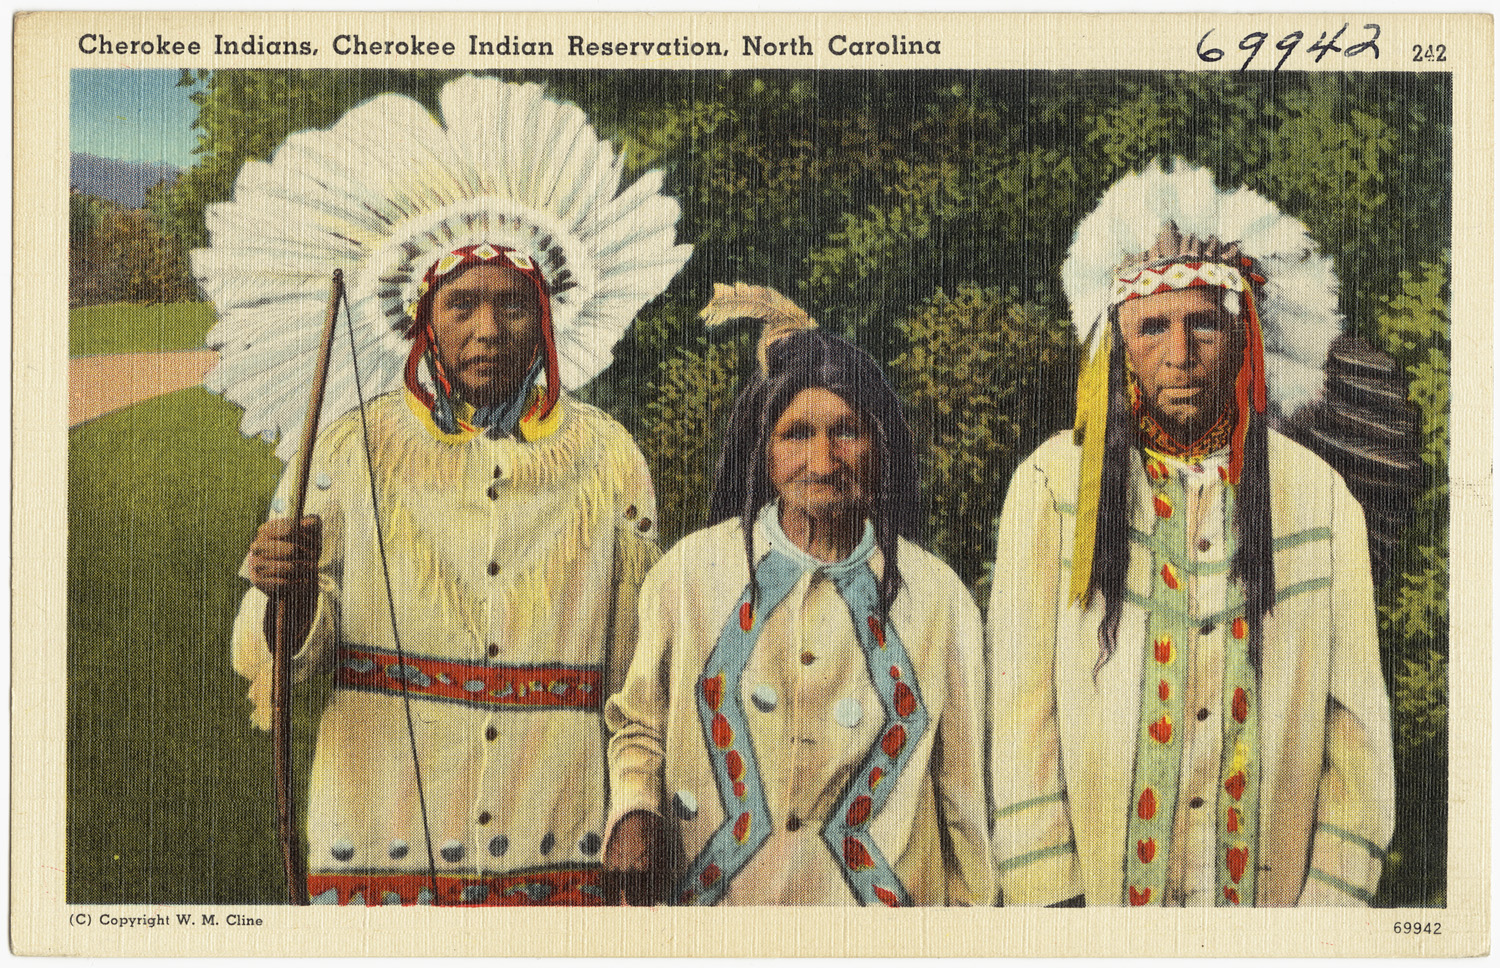 A circa 1940 postcard depicting the Cherokee of North Carolina. Tichnor Brothers Collection.